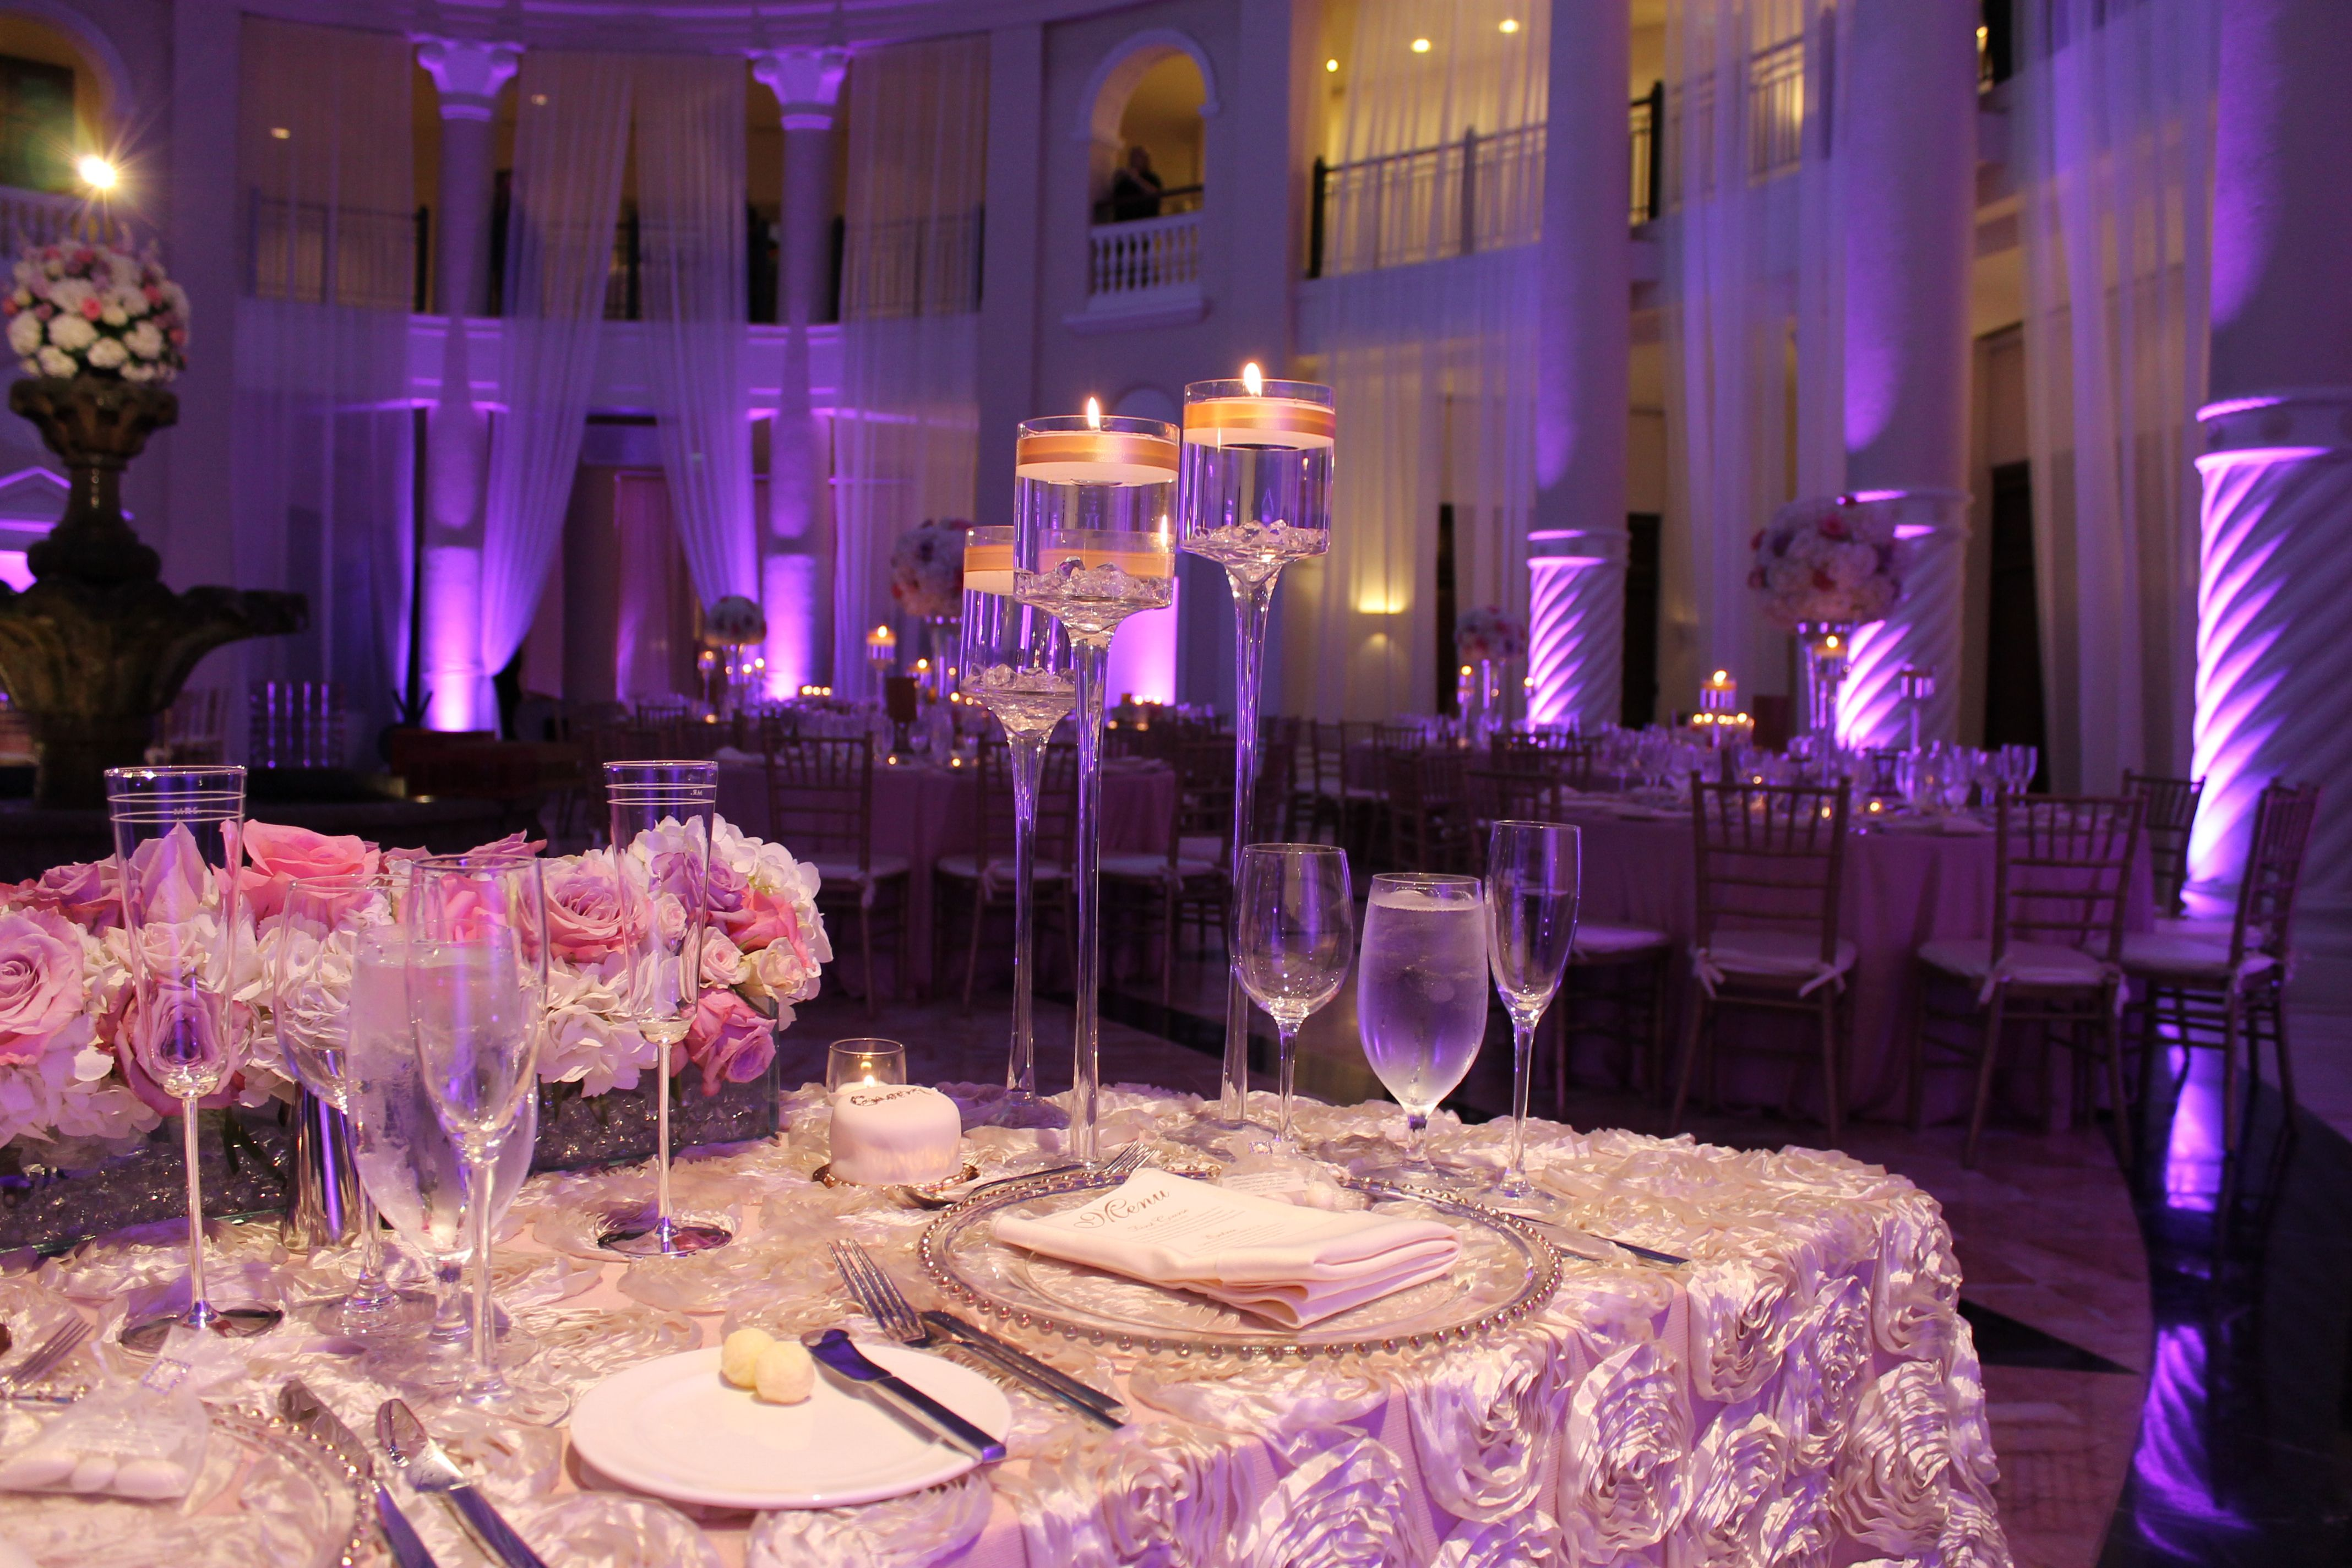 Westin Colonnade In Coral Gables Absolutely Beautiful Elegant And Romantic For A Wedding